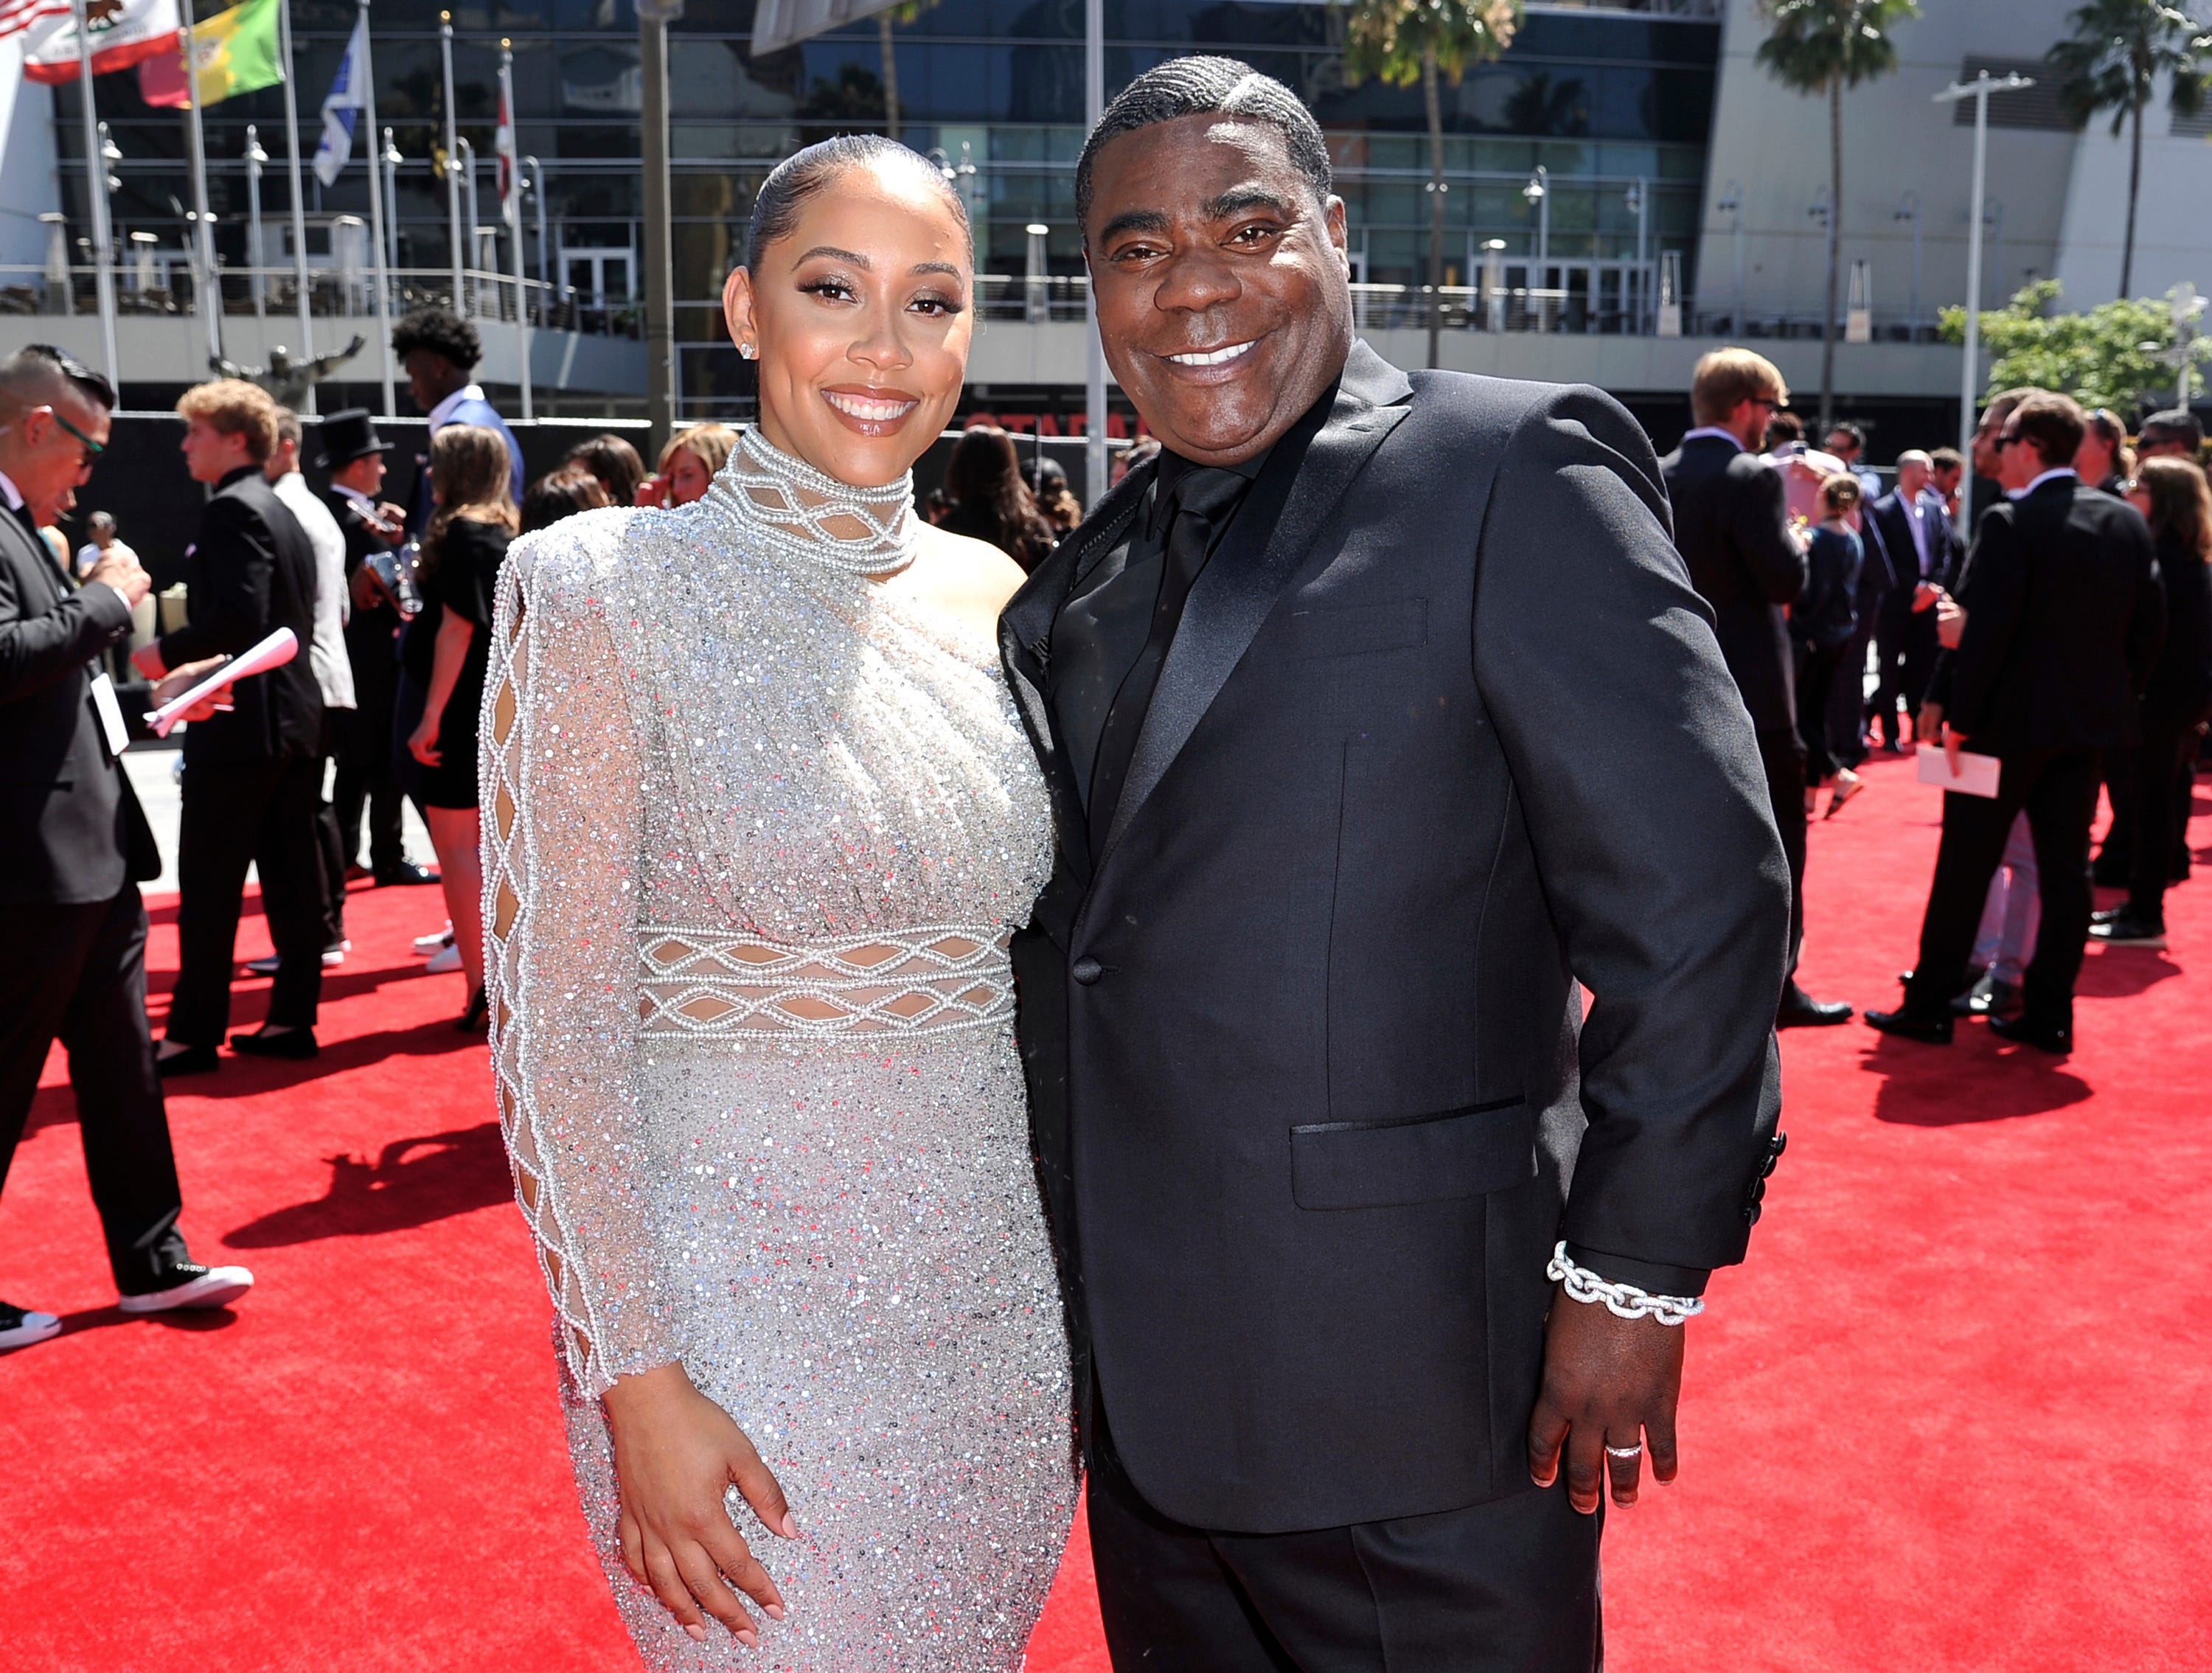 Tracy Morgan, wife Megan Wollover announce divorce after nearly 5 years of marriage